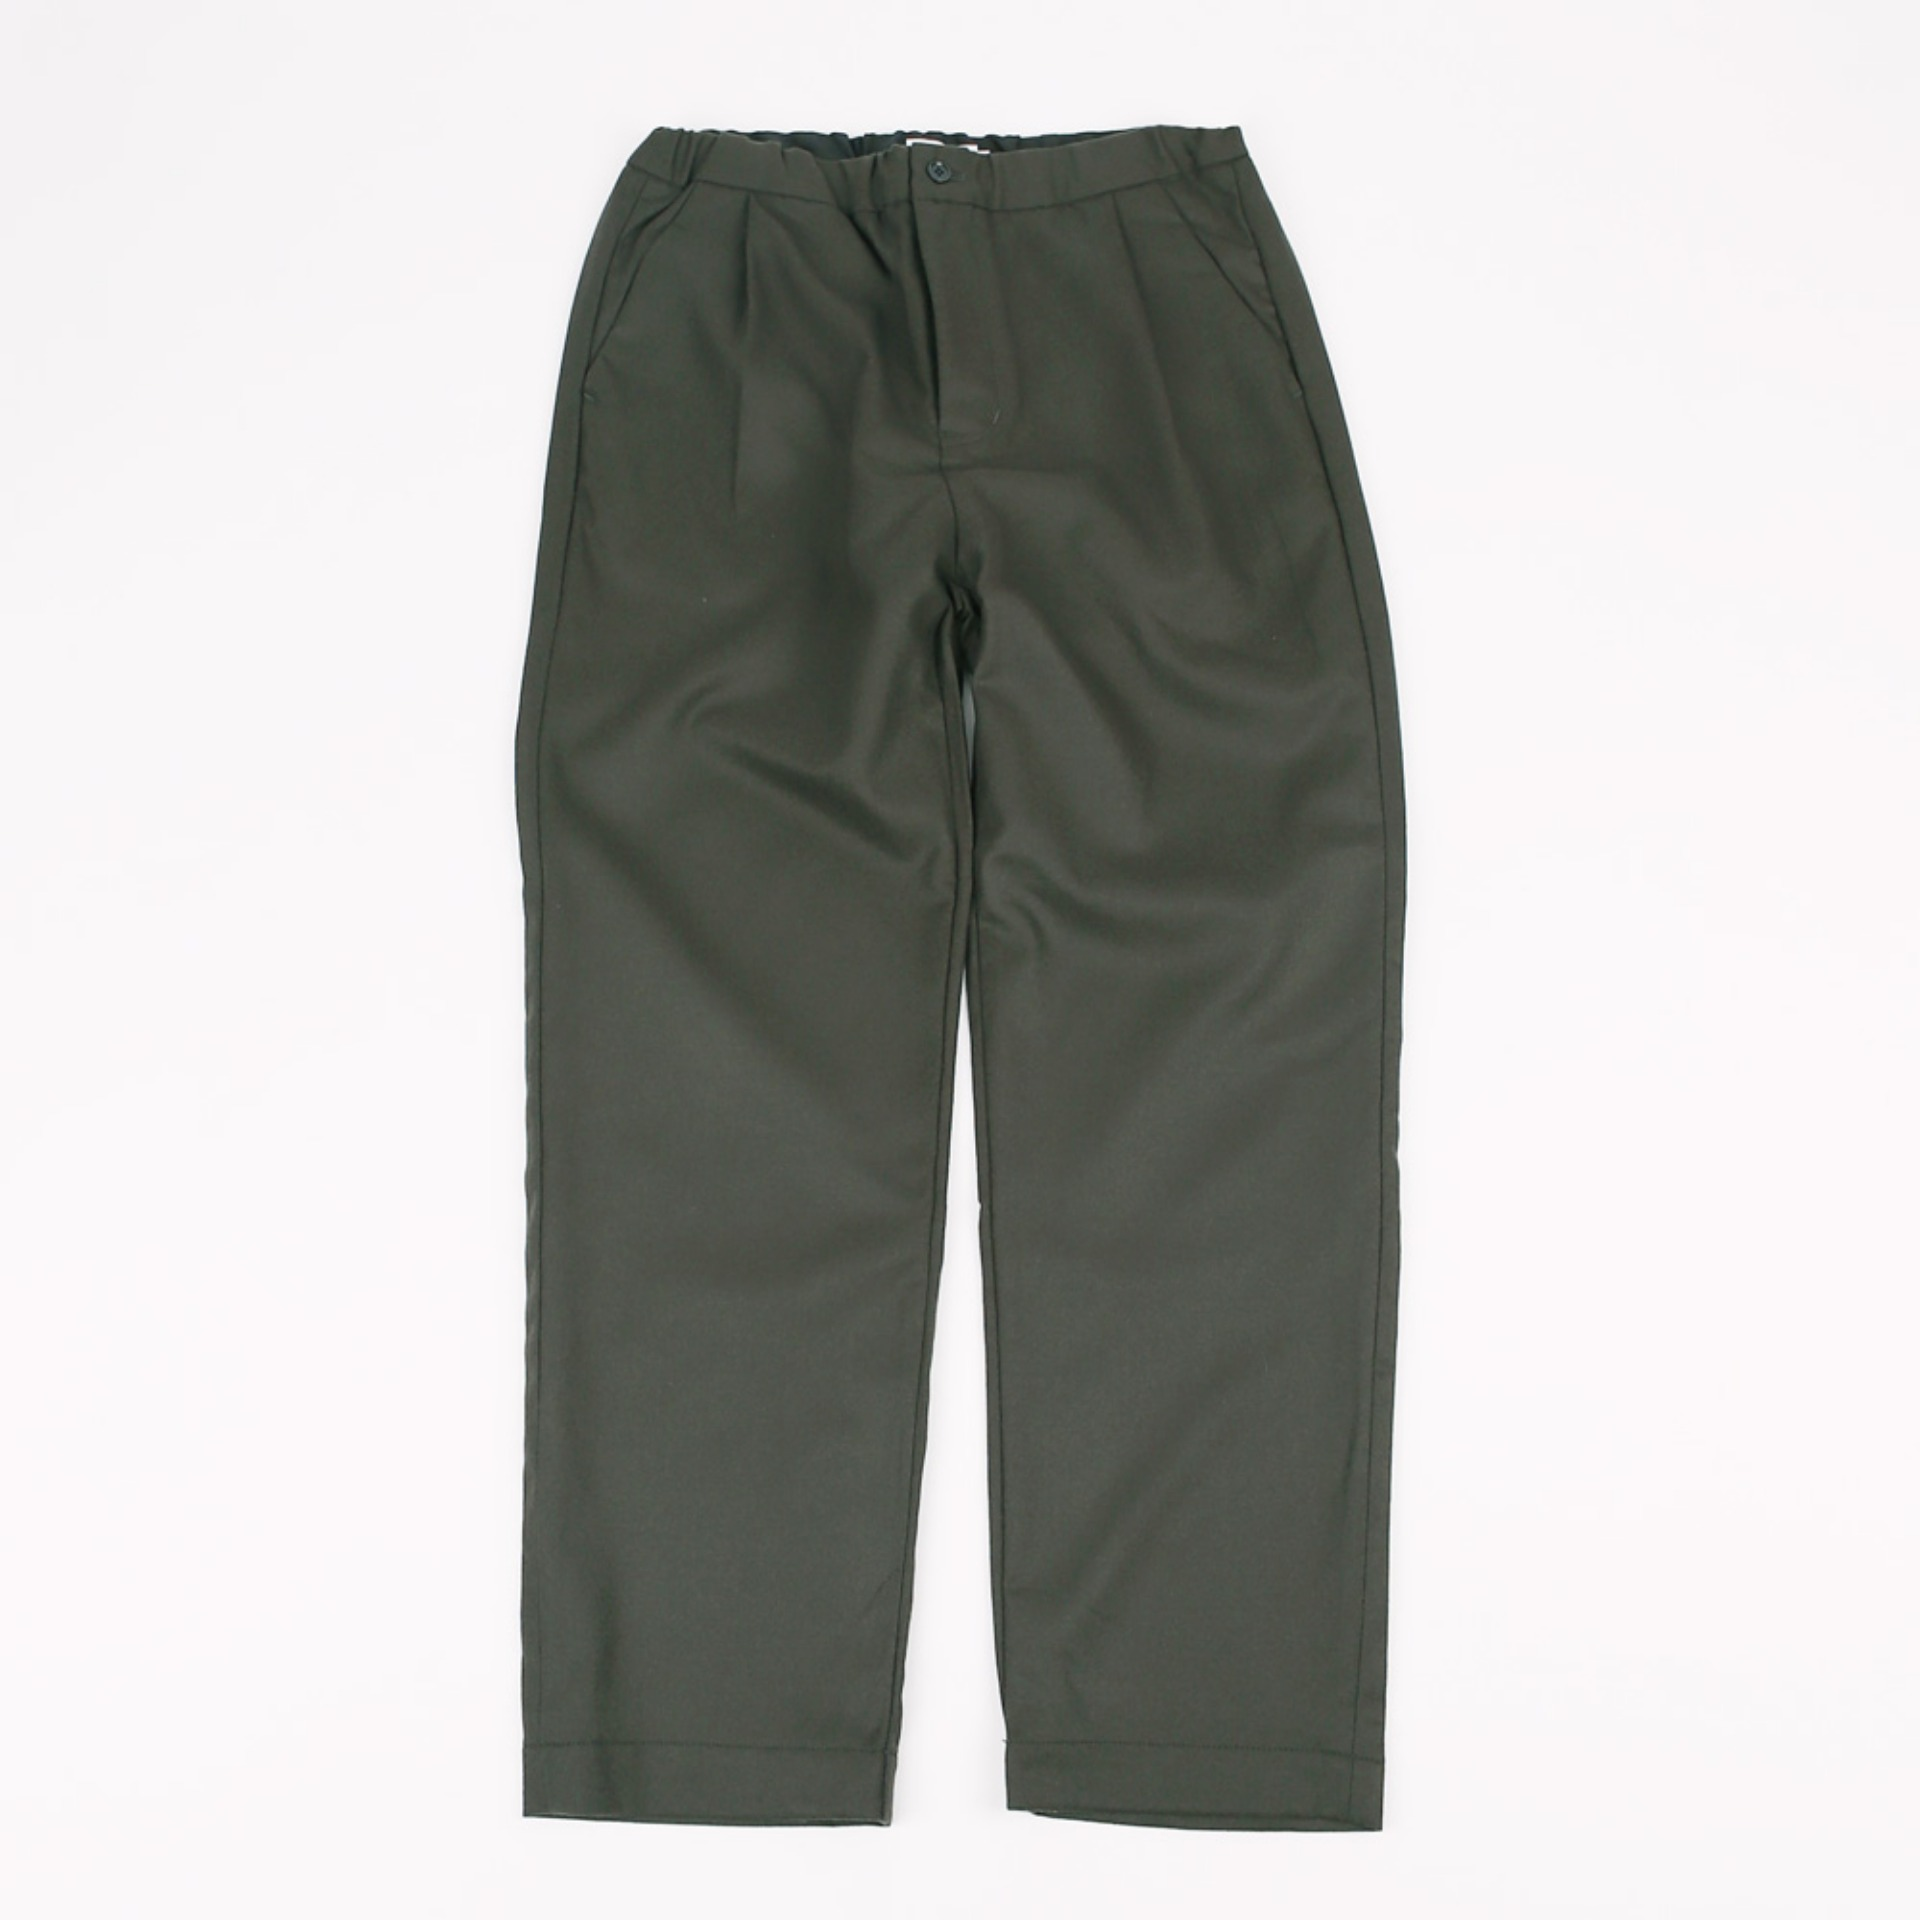 STILL BY HAND MELTON EASY PANTS Charcoal